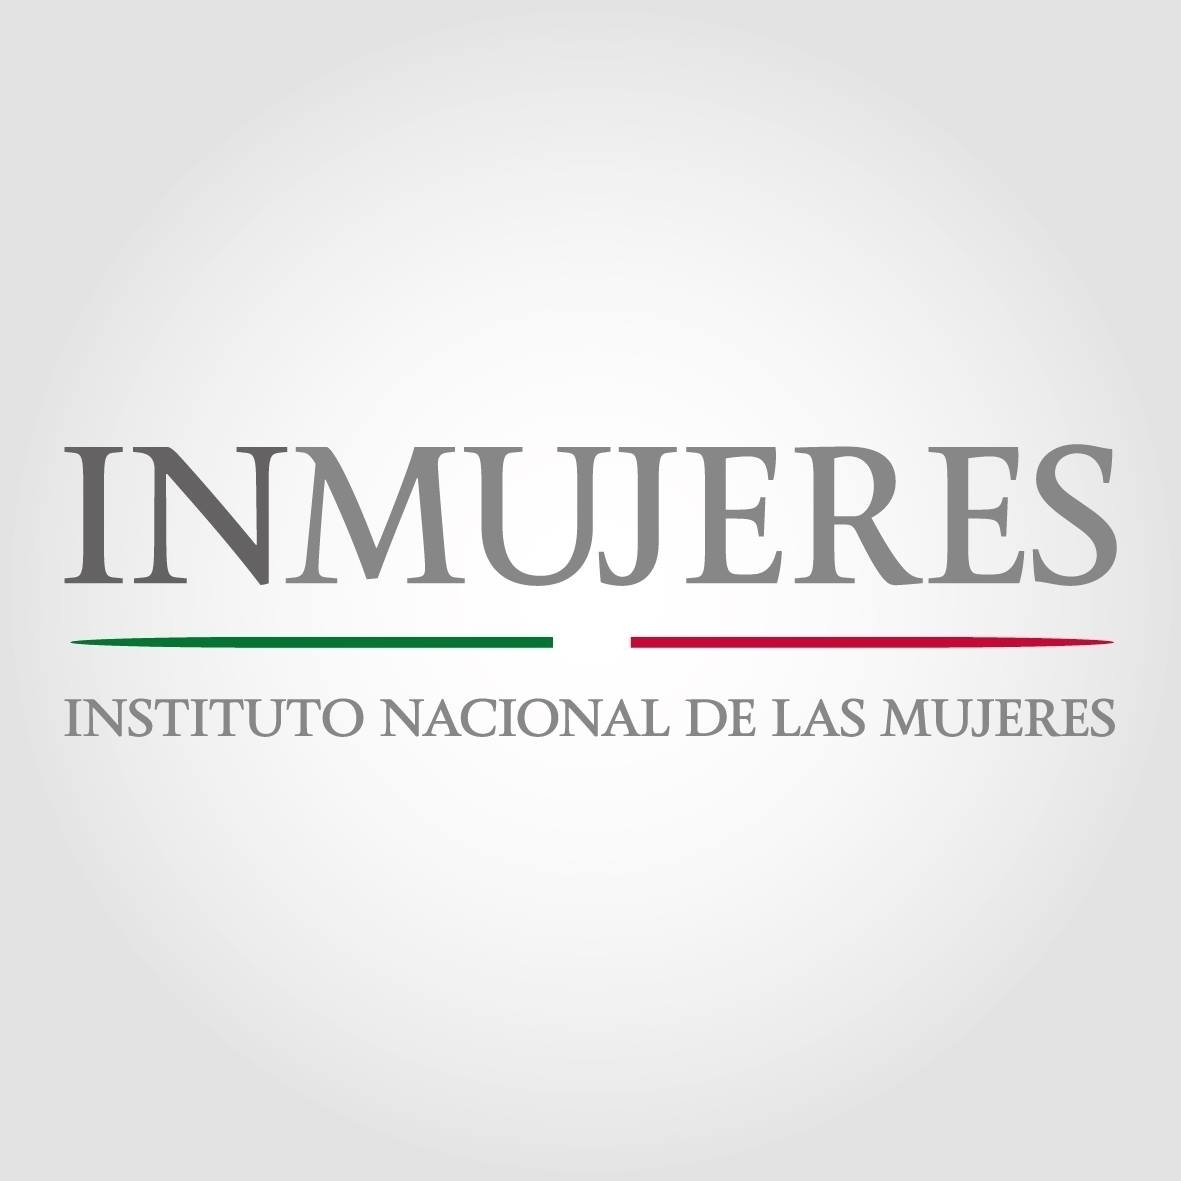 Inmujeres